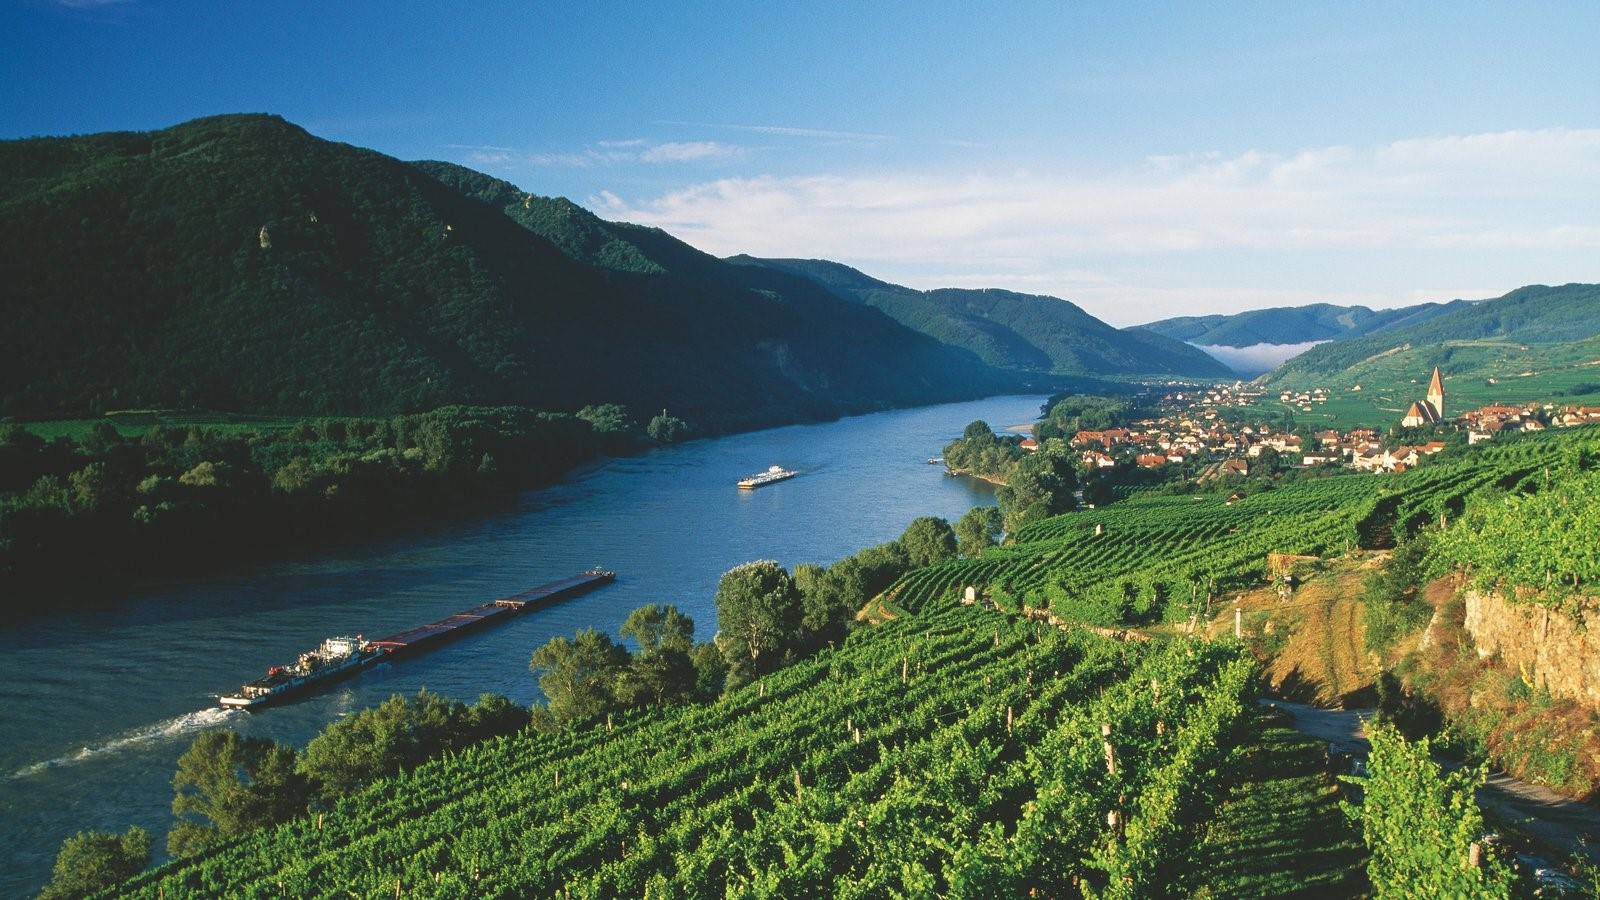 Nicko Vision Cruise on the Danube and Central Europe